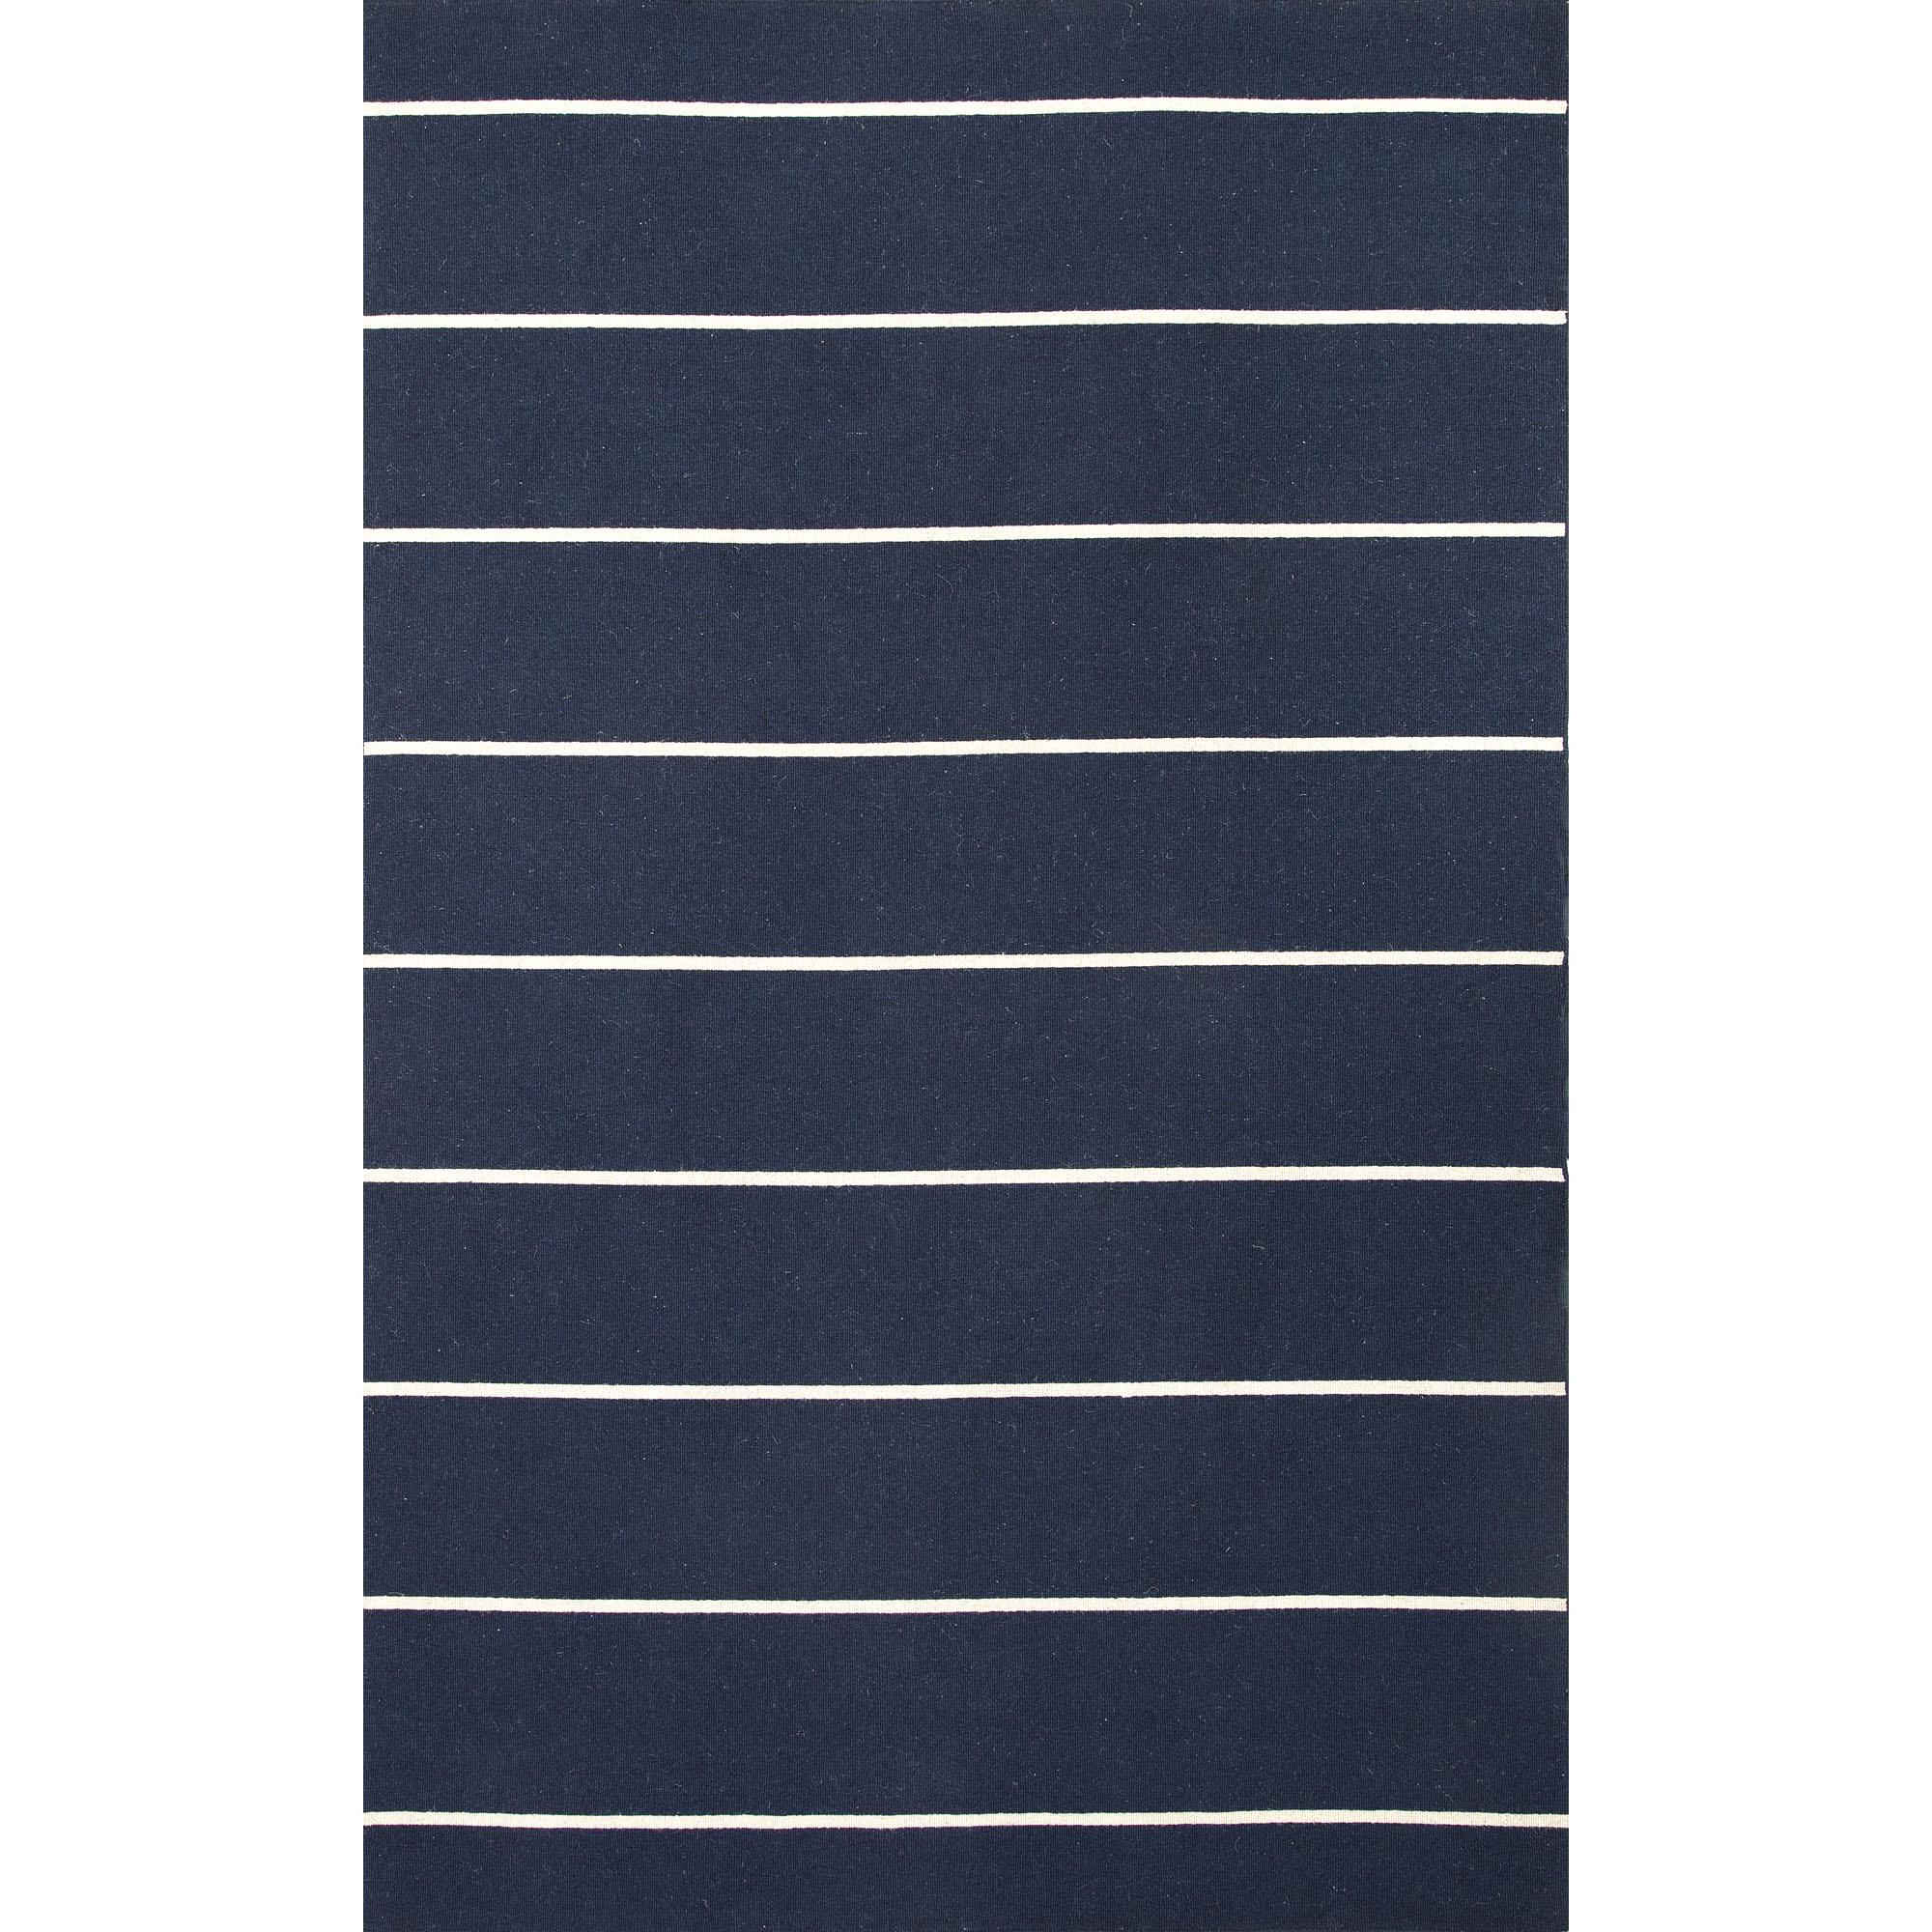 JAIPUR Rugs Coastal Shores 2 x 3 Rug - Item Number: RUG122757